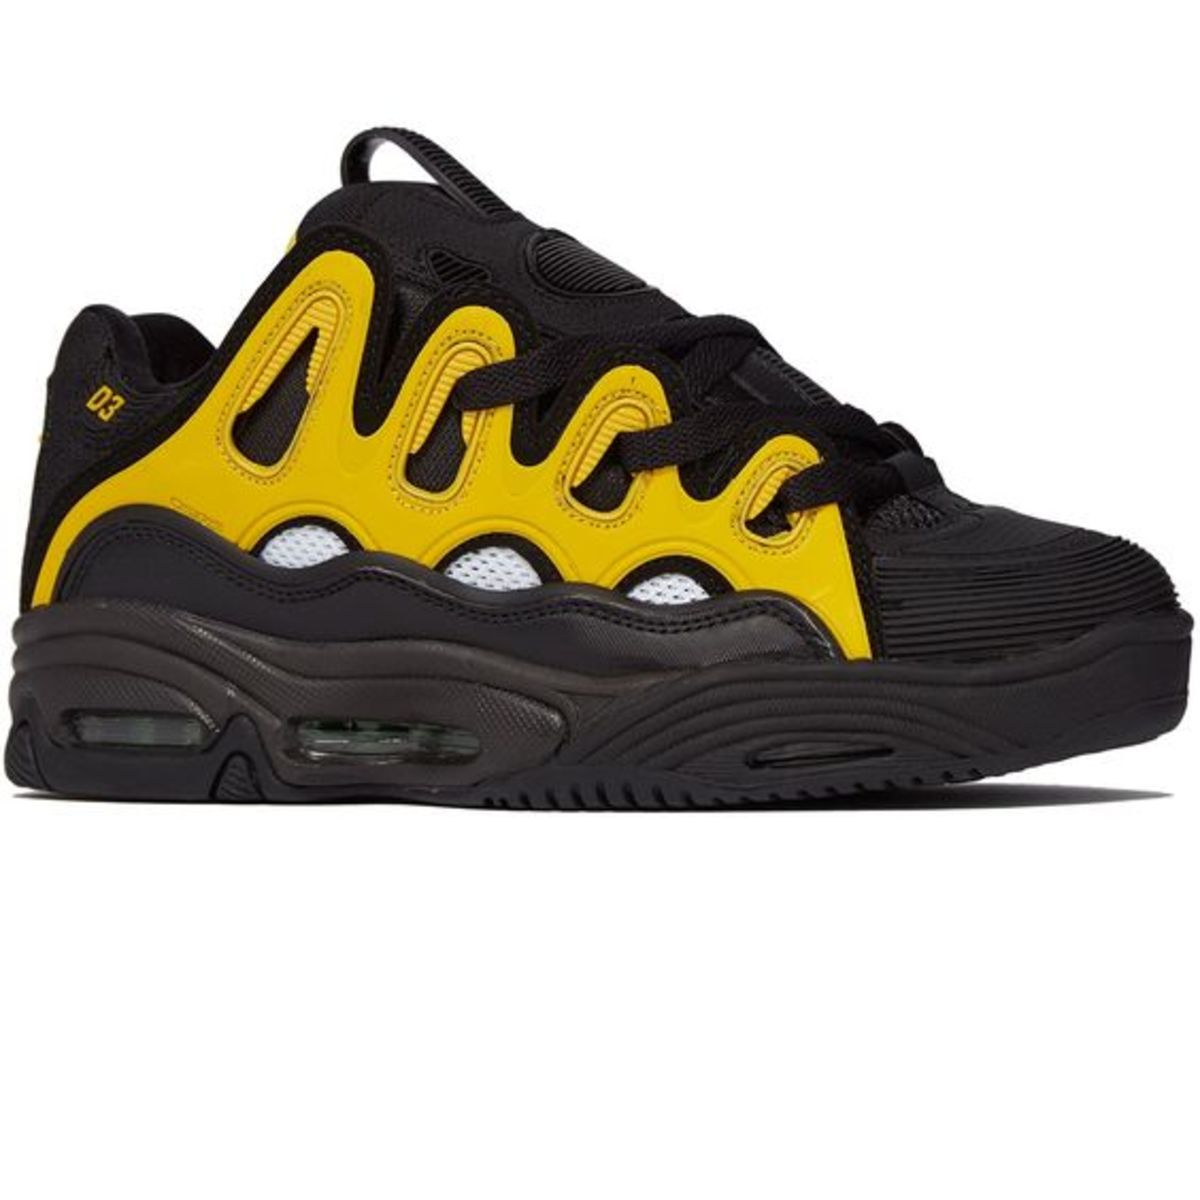 The infamous Osiris D3. Probably the ugliest skate shoe from the subculture. But ASAP Rocky made a shoe inspired by this, and 2019 is the year of the ugly sneaker. You might as well get these I guess.